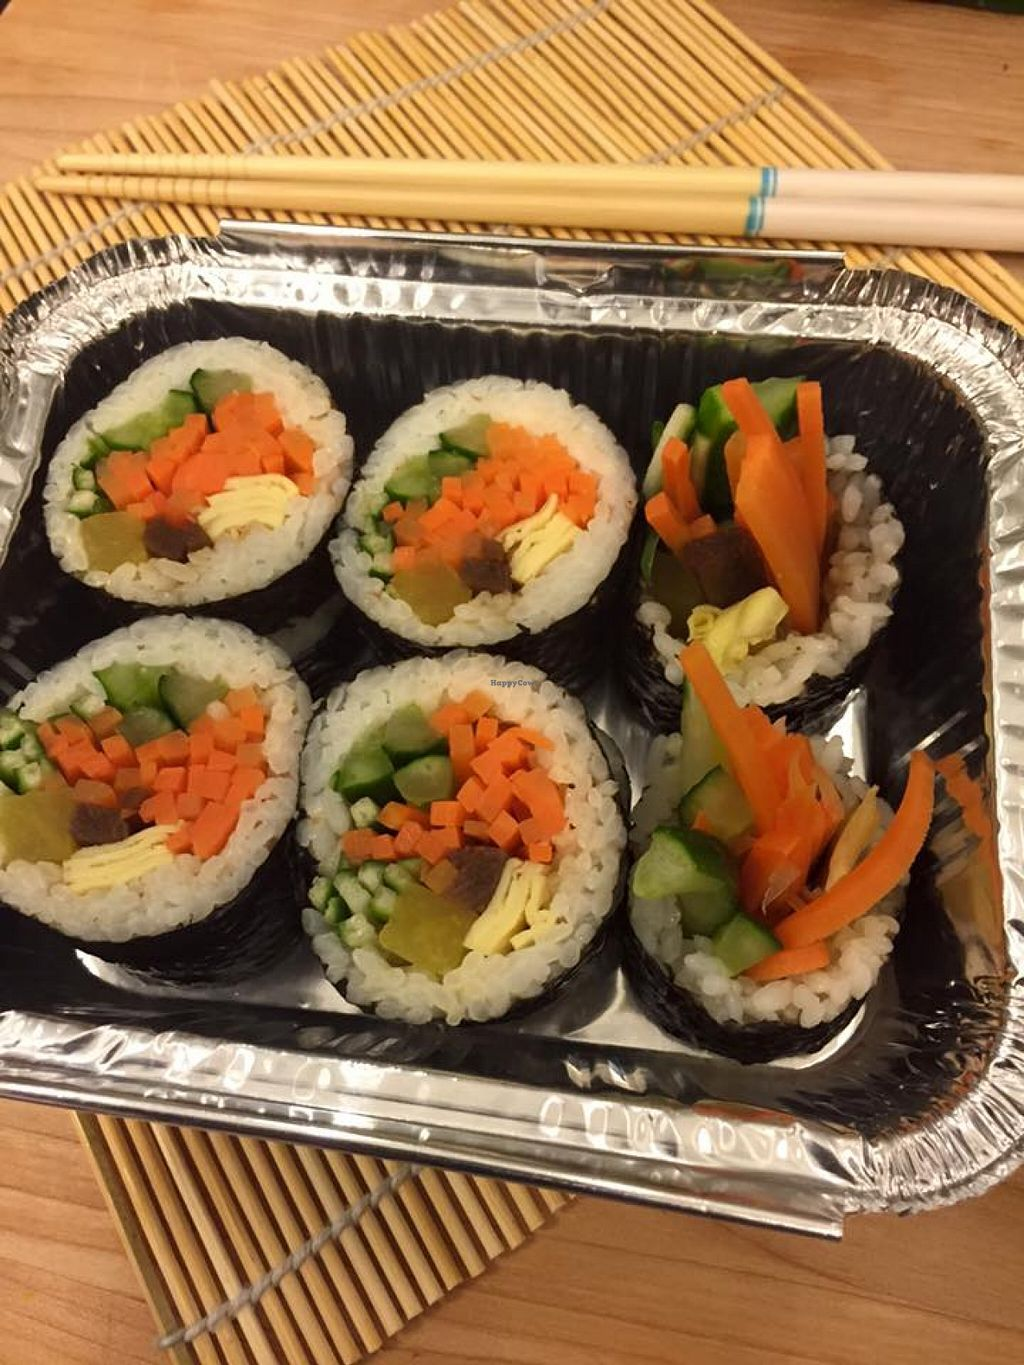 """Photo of Dosirak House in Tung Chung  by <a href=""""/members/profile/Stevie"""">Stevie</a> <br/>Vegetable kimbap <br/> September 13, 2015  - <a href='/contact/abuse/image/63301/117542'>Report</a>"""